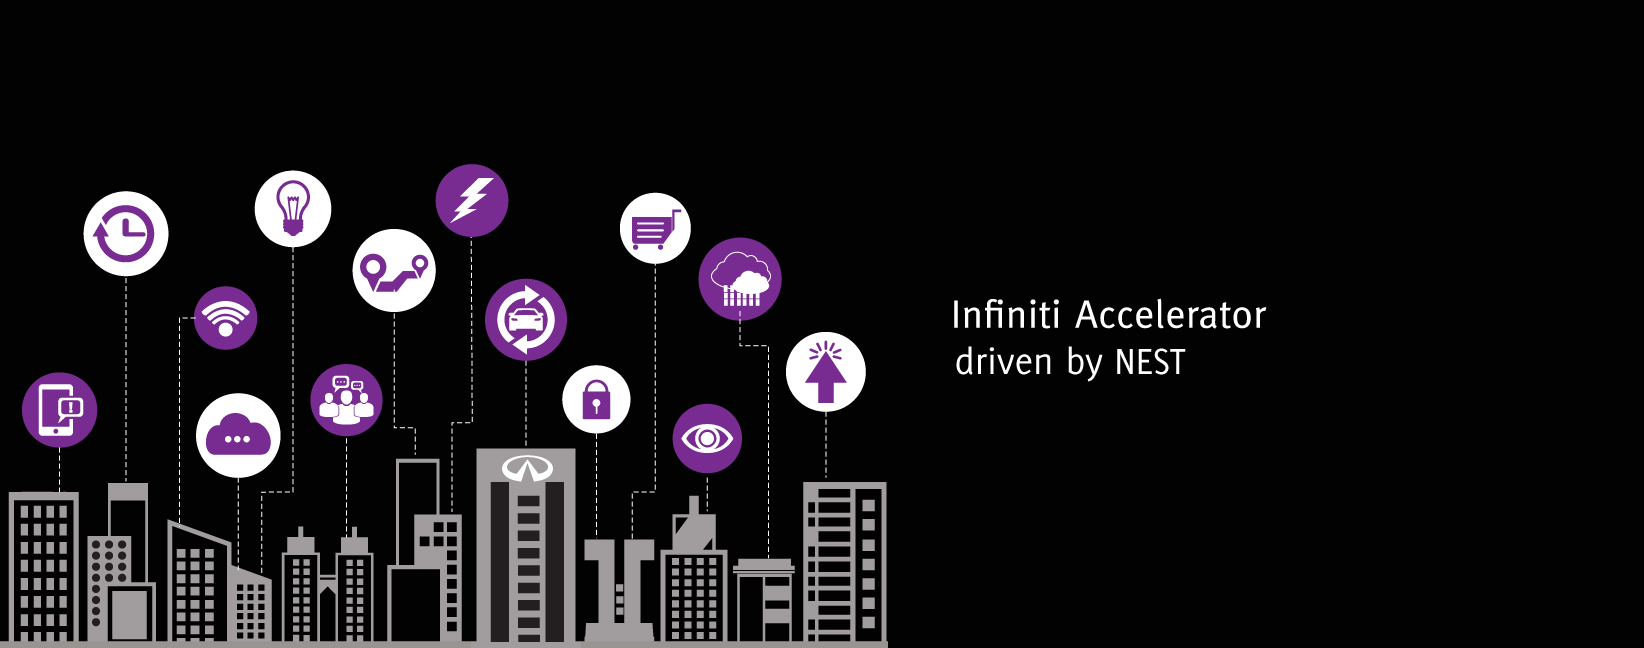 Automaker INFINITY, Nest Invite African Startups To Internet of Things Accelerator Program